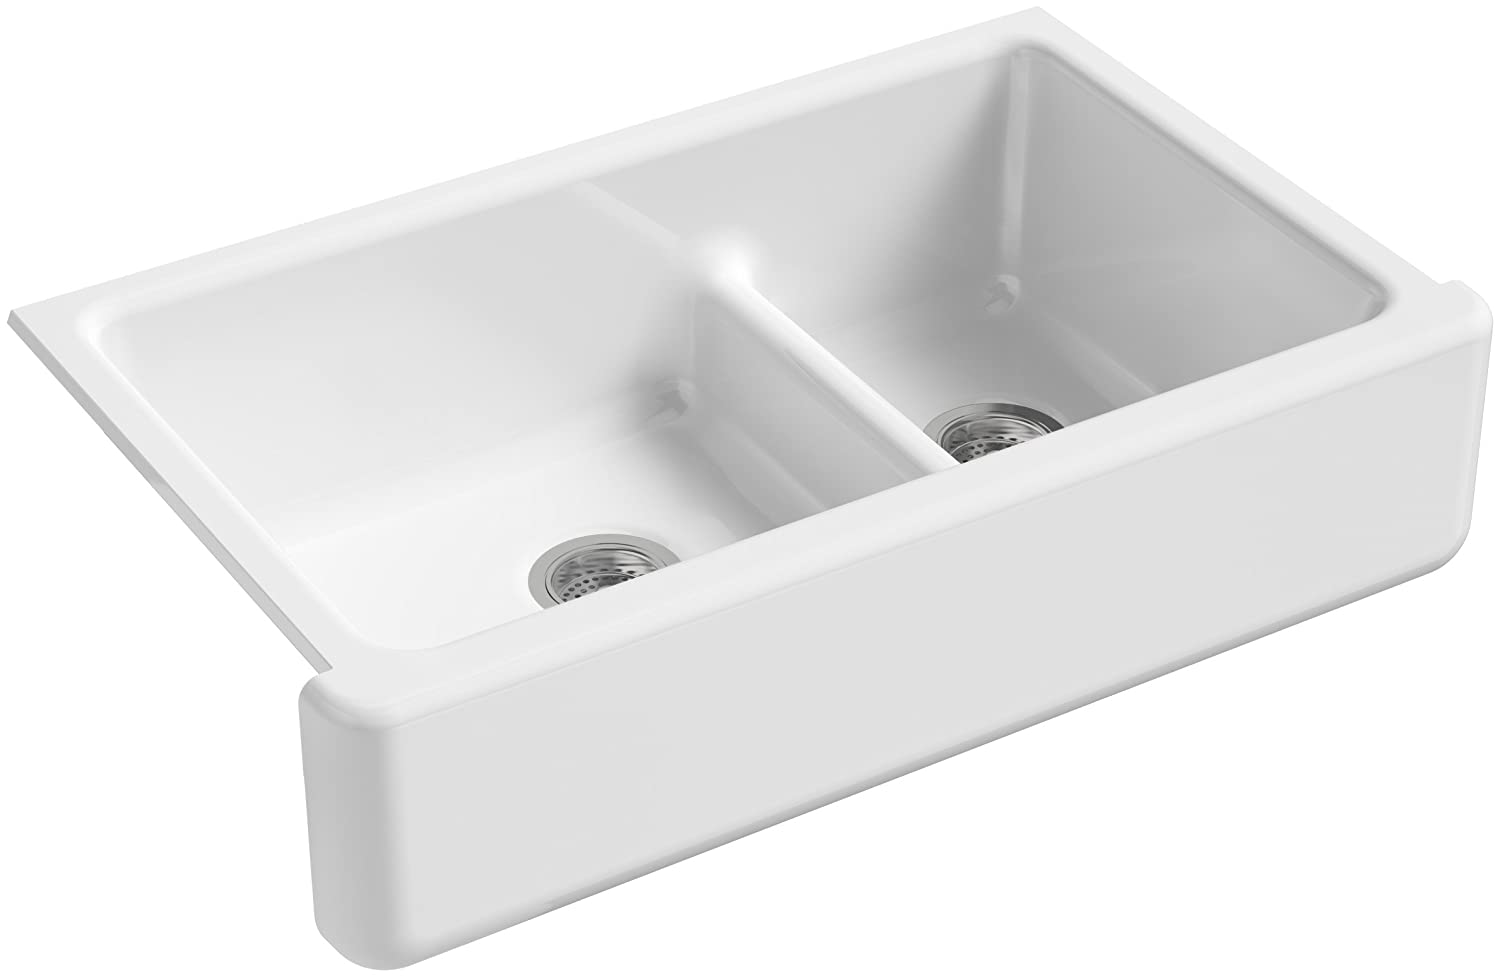 36 Inch Farm Sink : ... Sink with Tall Apron, 35-1/2-Inch X 21-9/16-Inch X 9-5/8-Inch, White